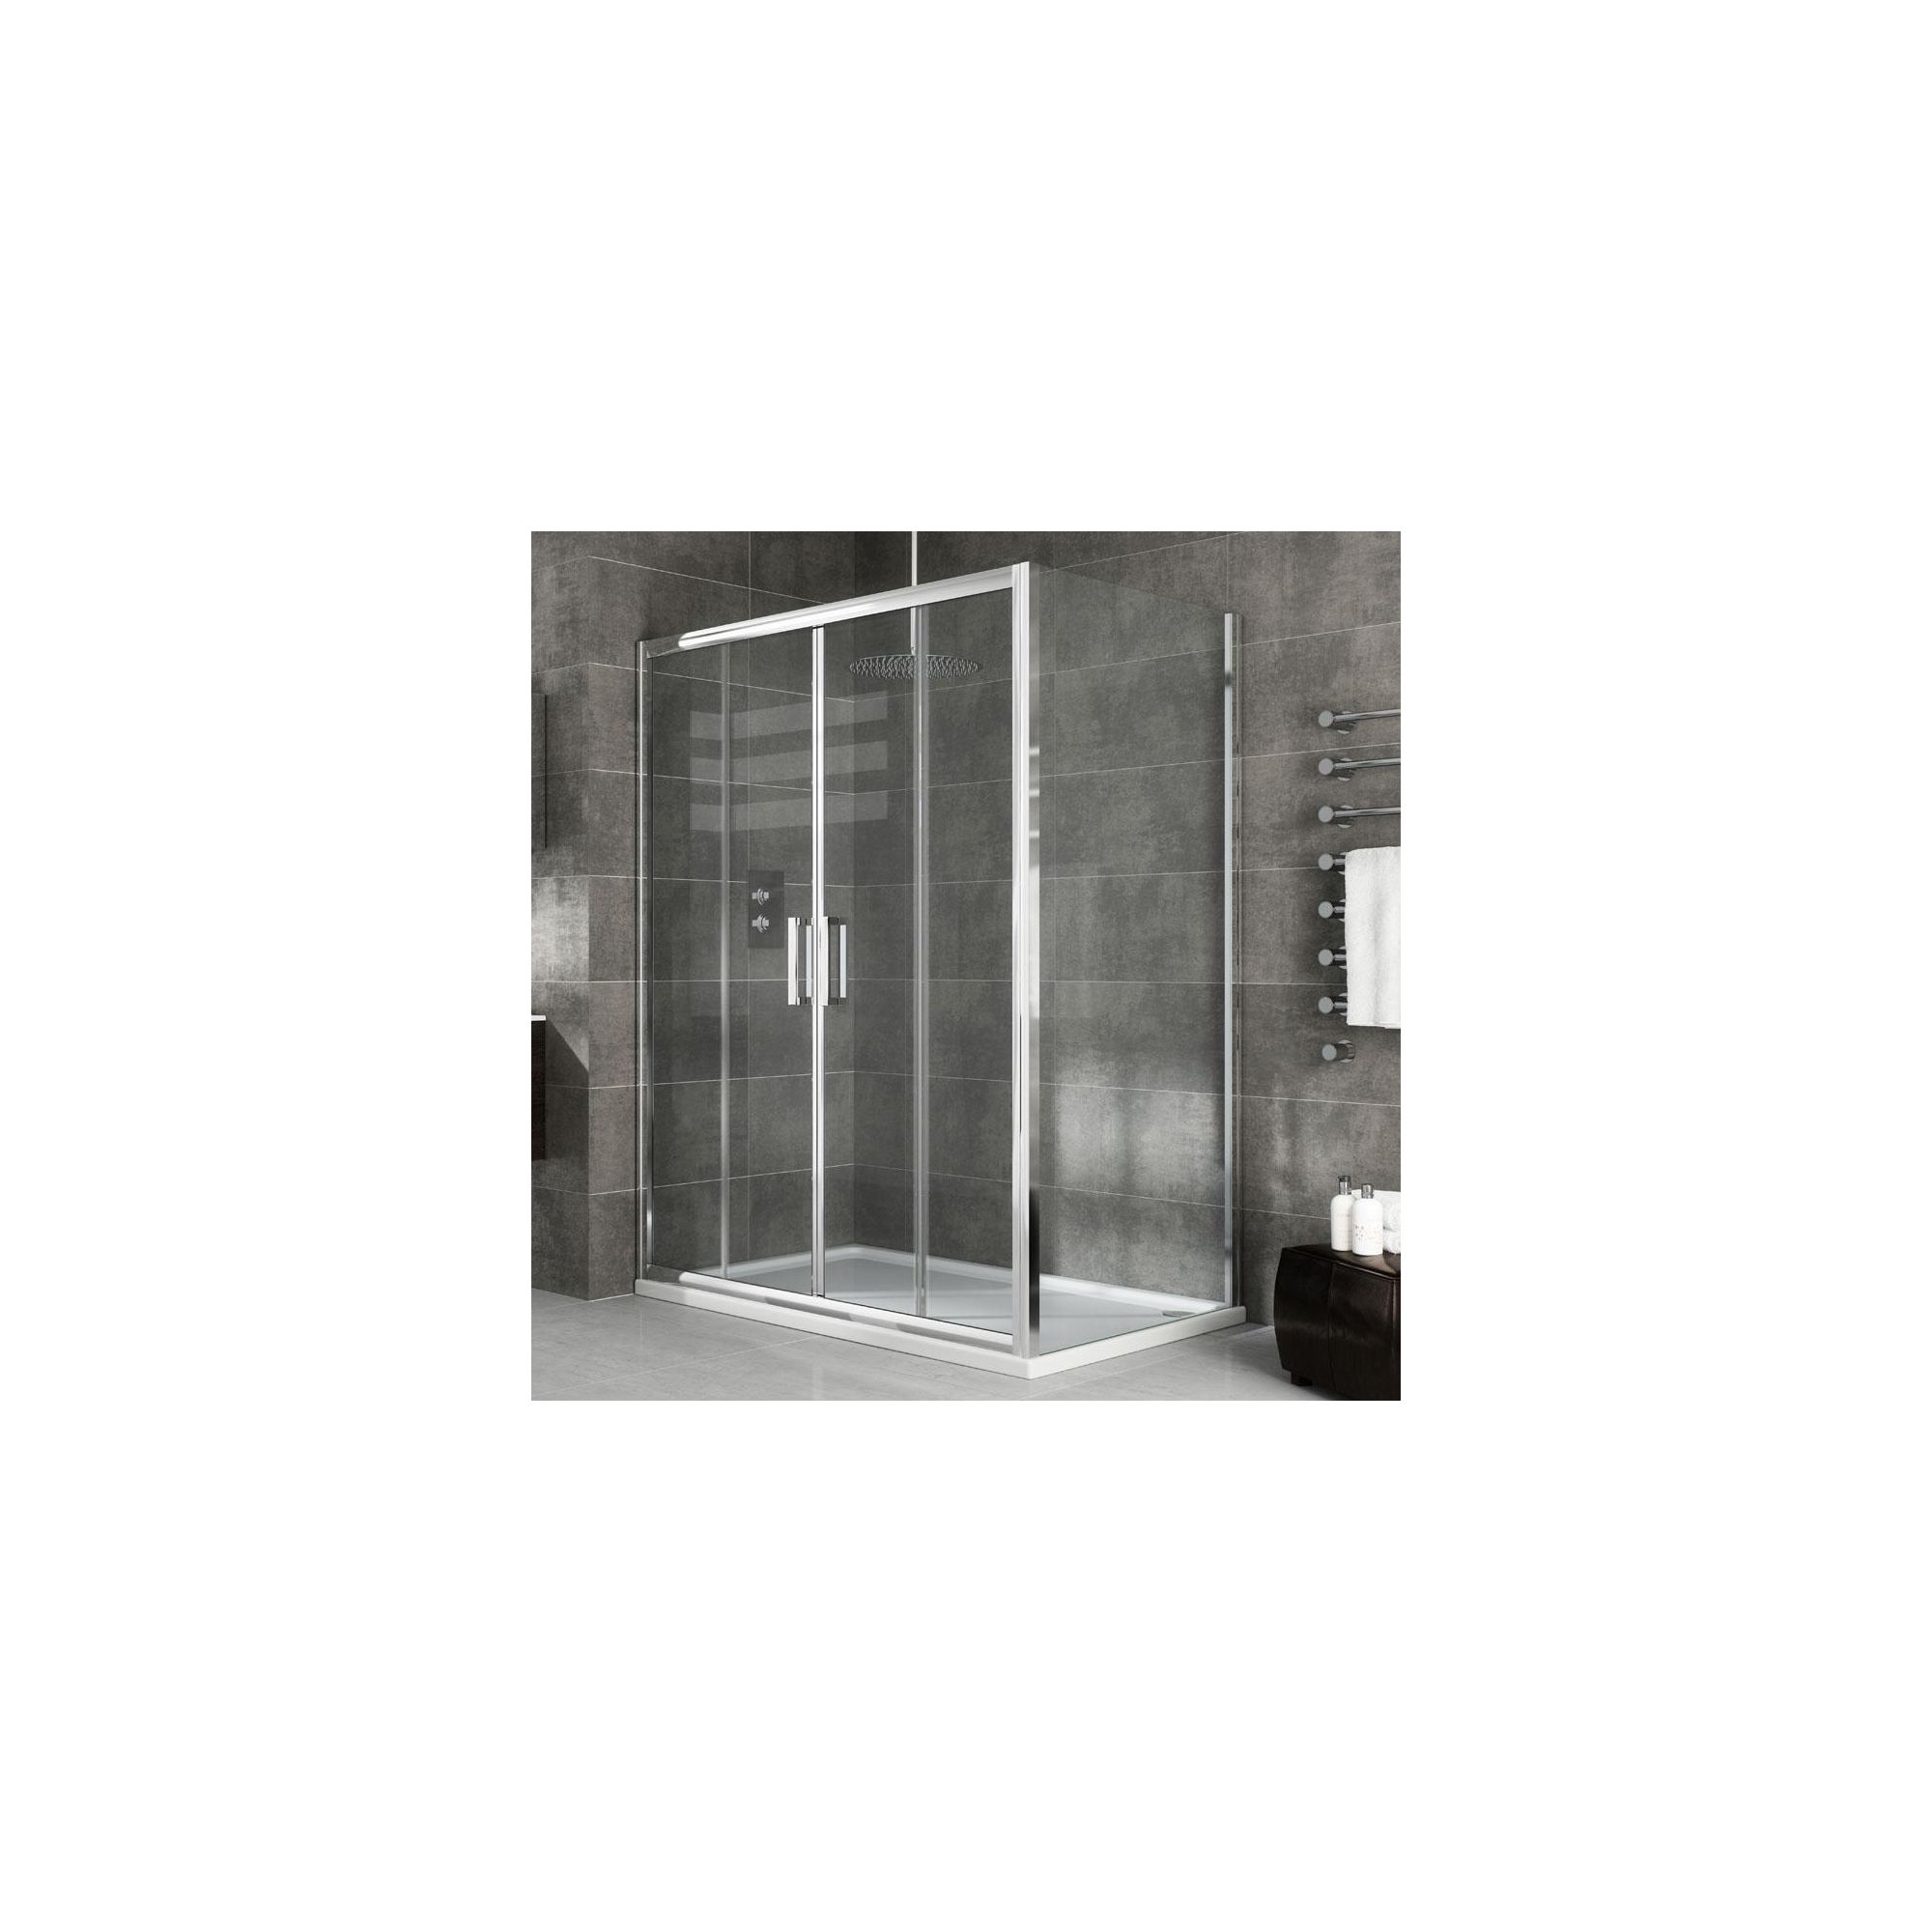 Elemis Eternity Two-Panel Jumbo Sliding Door Shower Enclosure, 1000mm x 800mm, 8mm Glass, Low Profile Tray at Tesco Direct